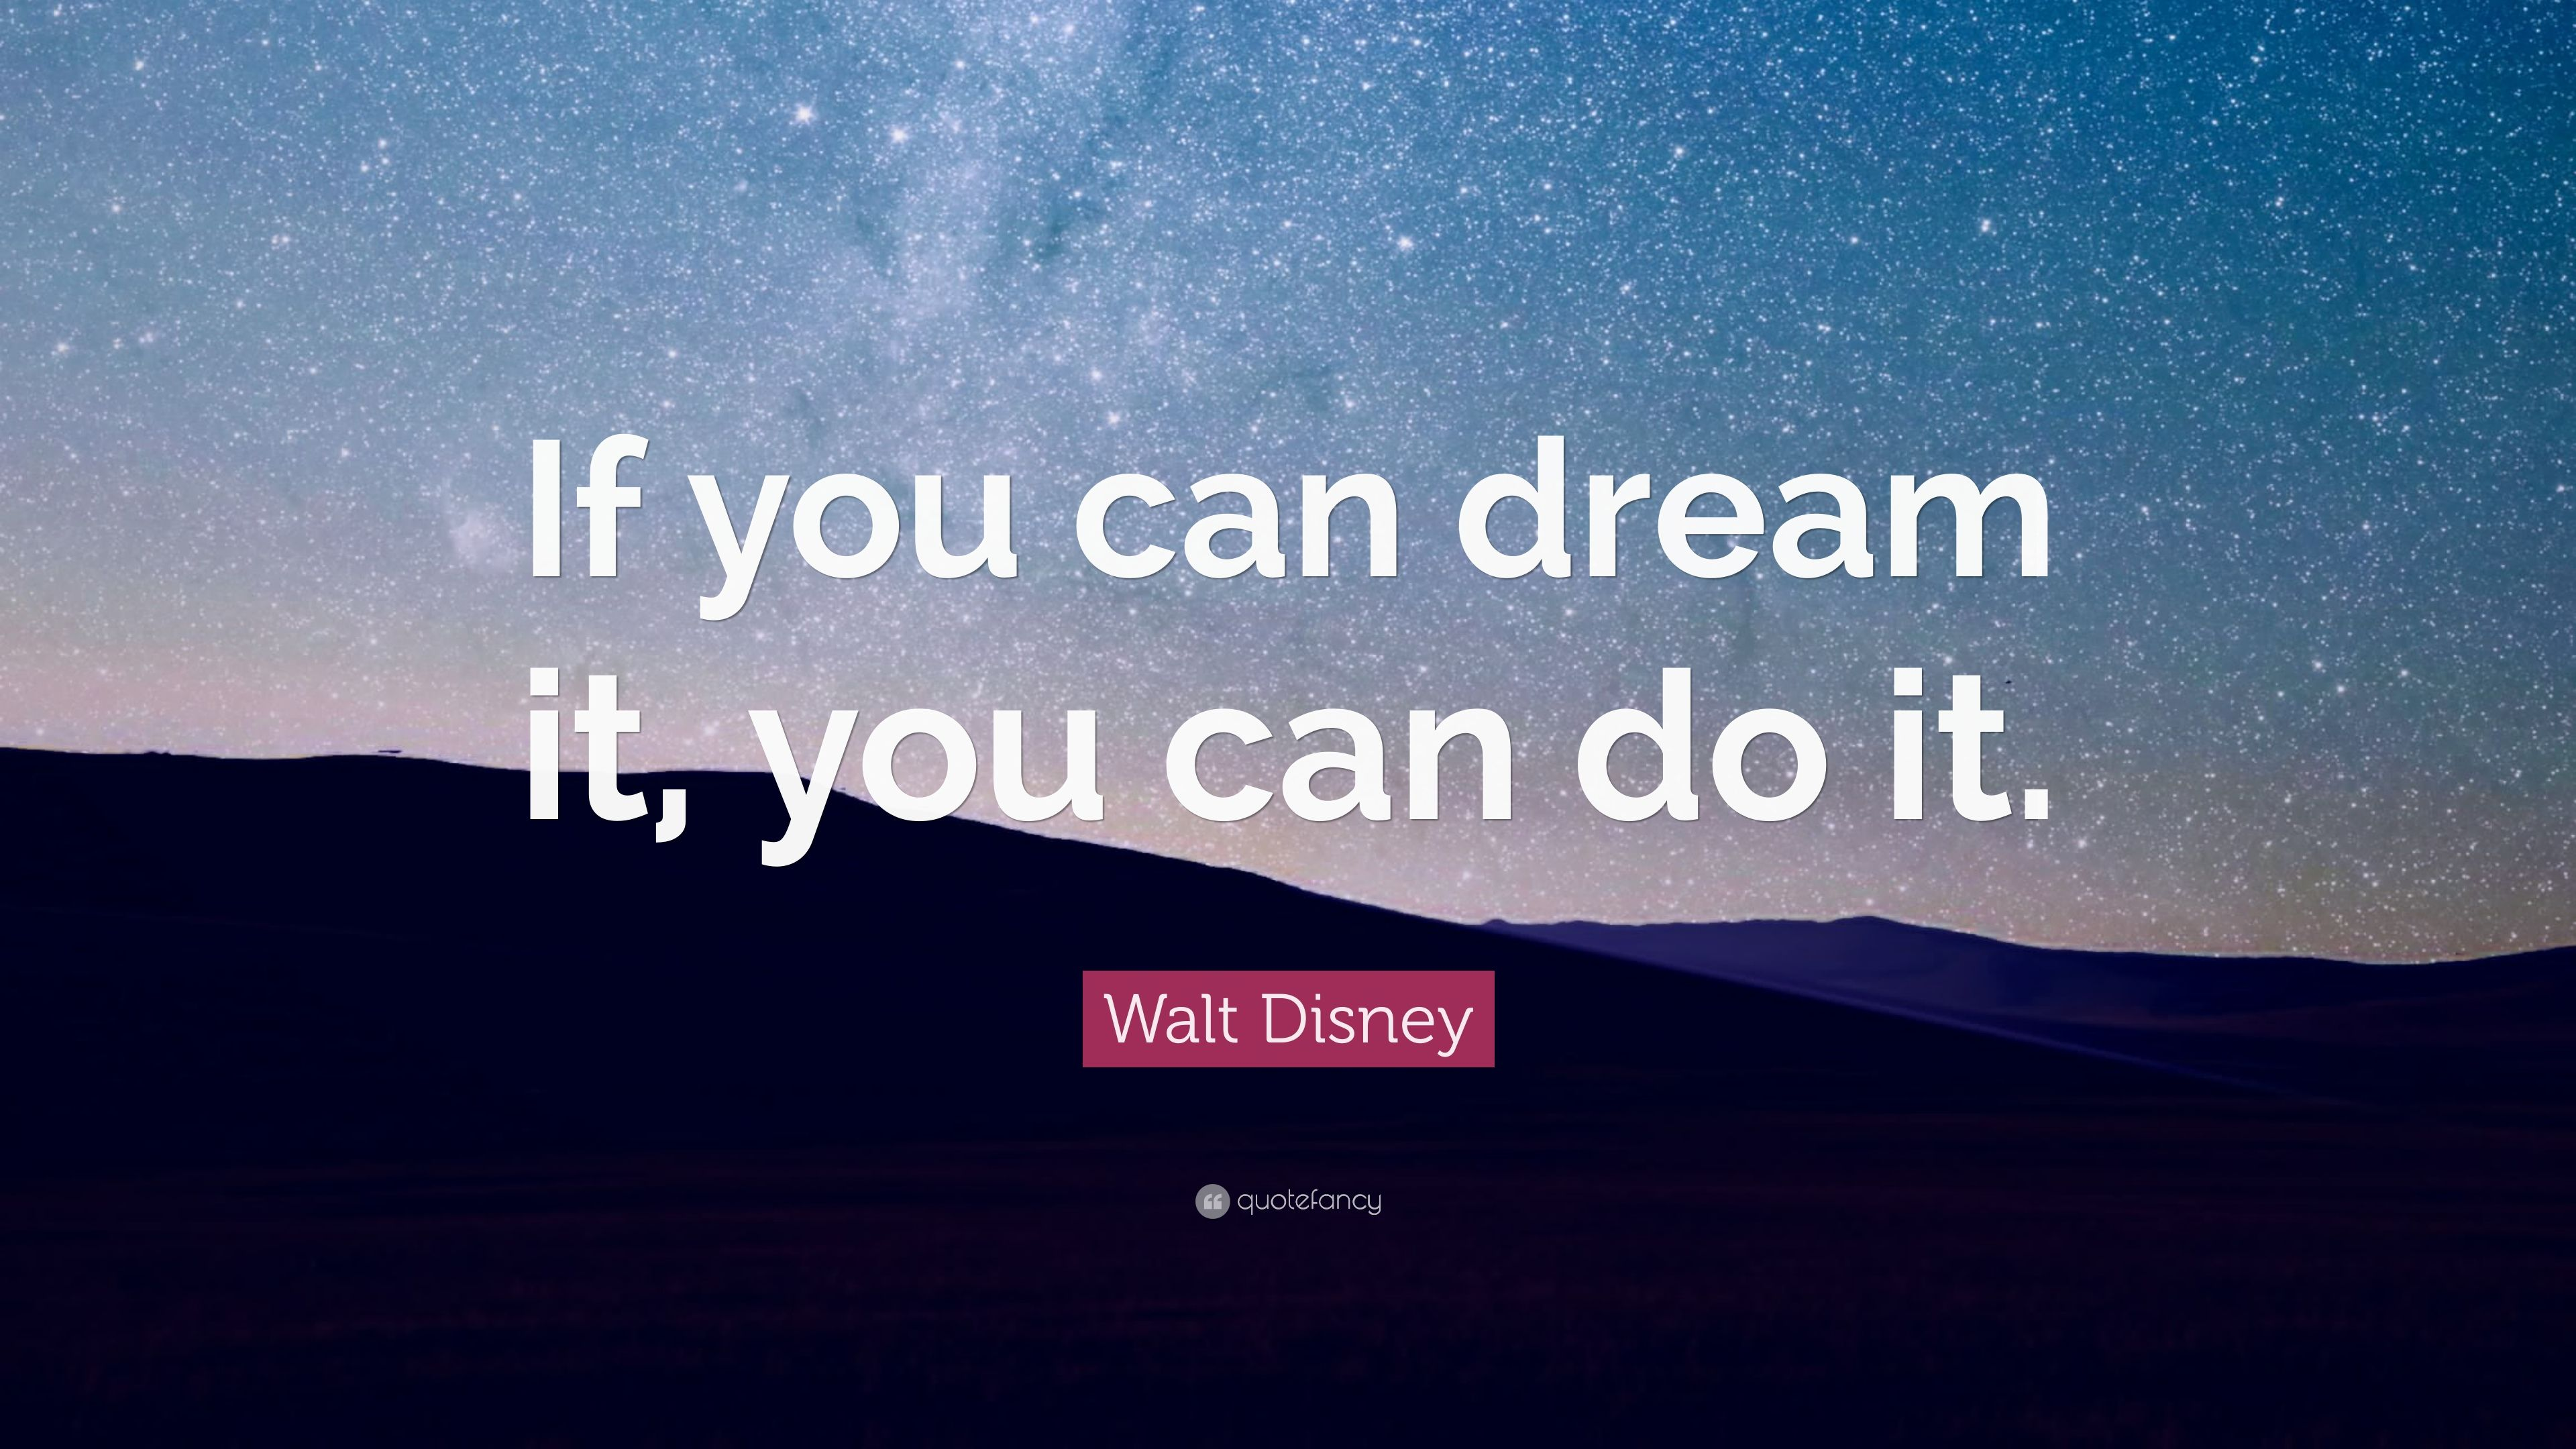 Dream Quote Wallpapers Desktop Savage in 2019 Wallpaper quotes 3840x2160